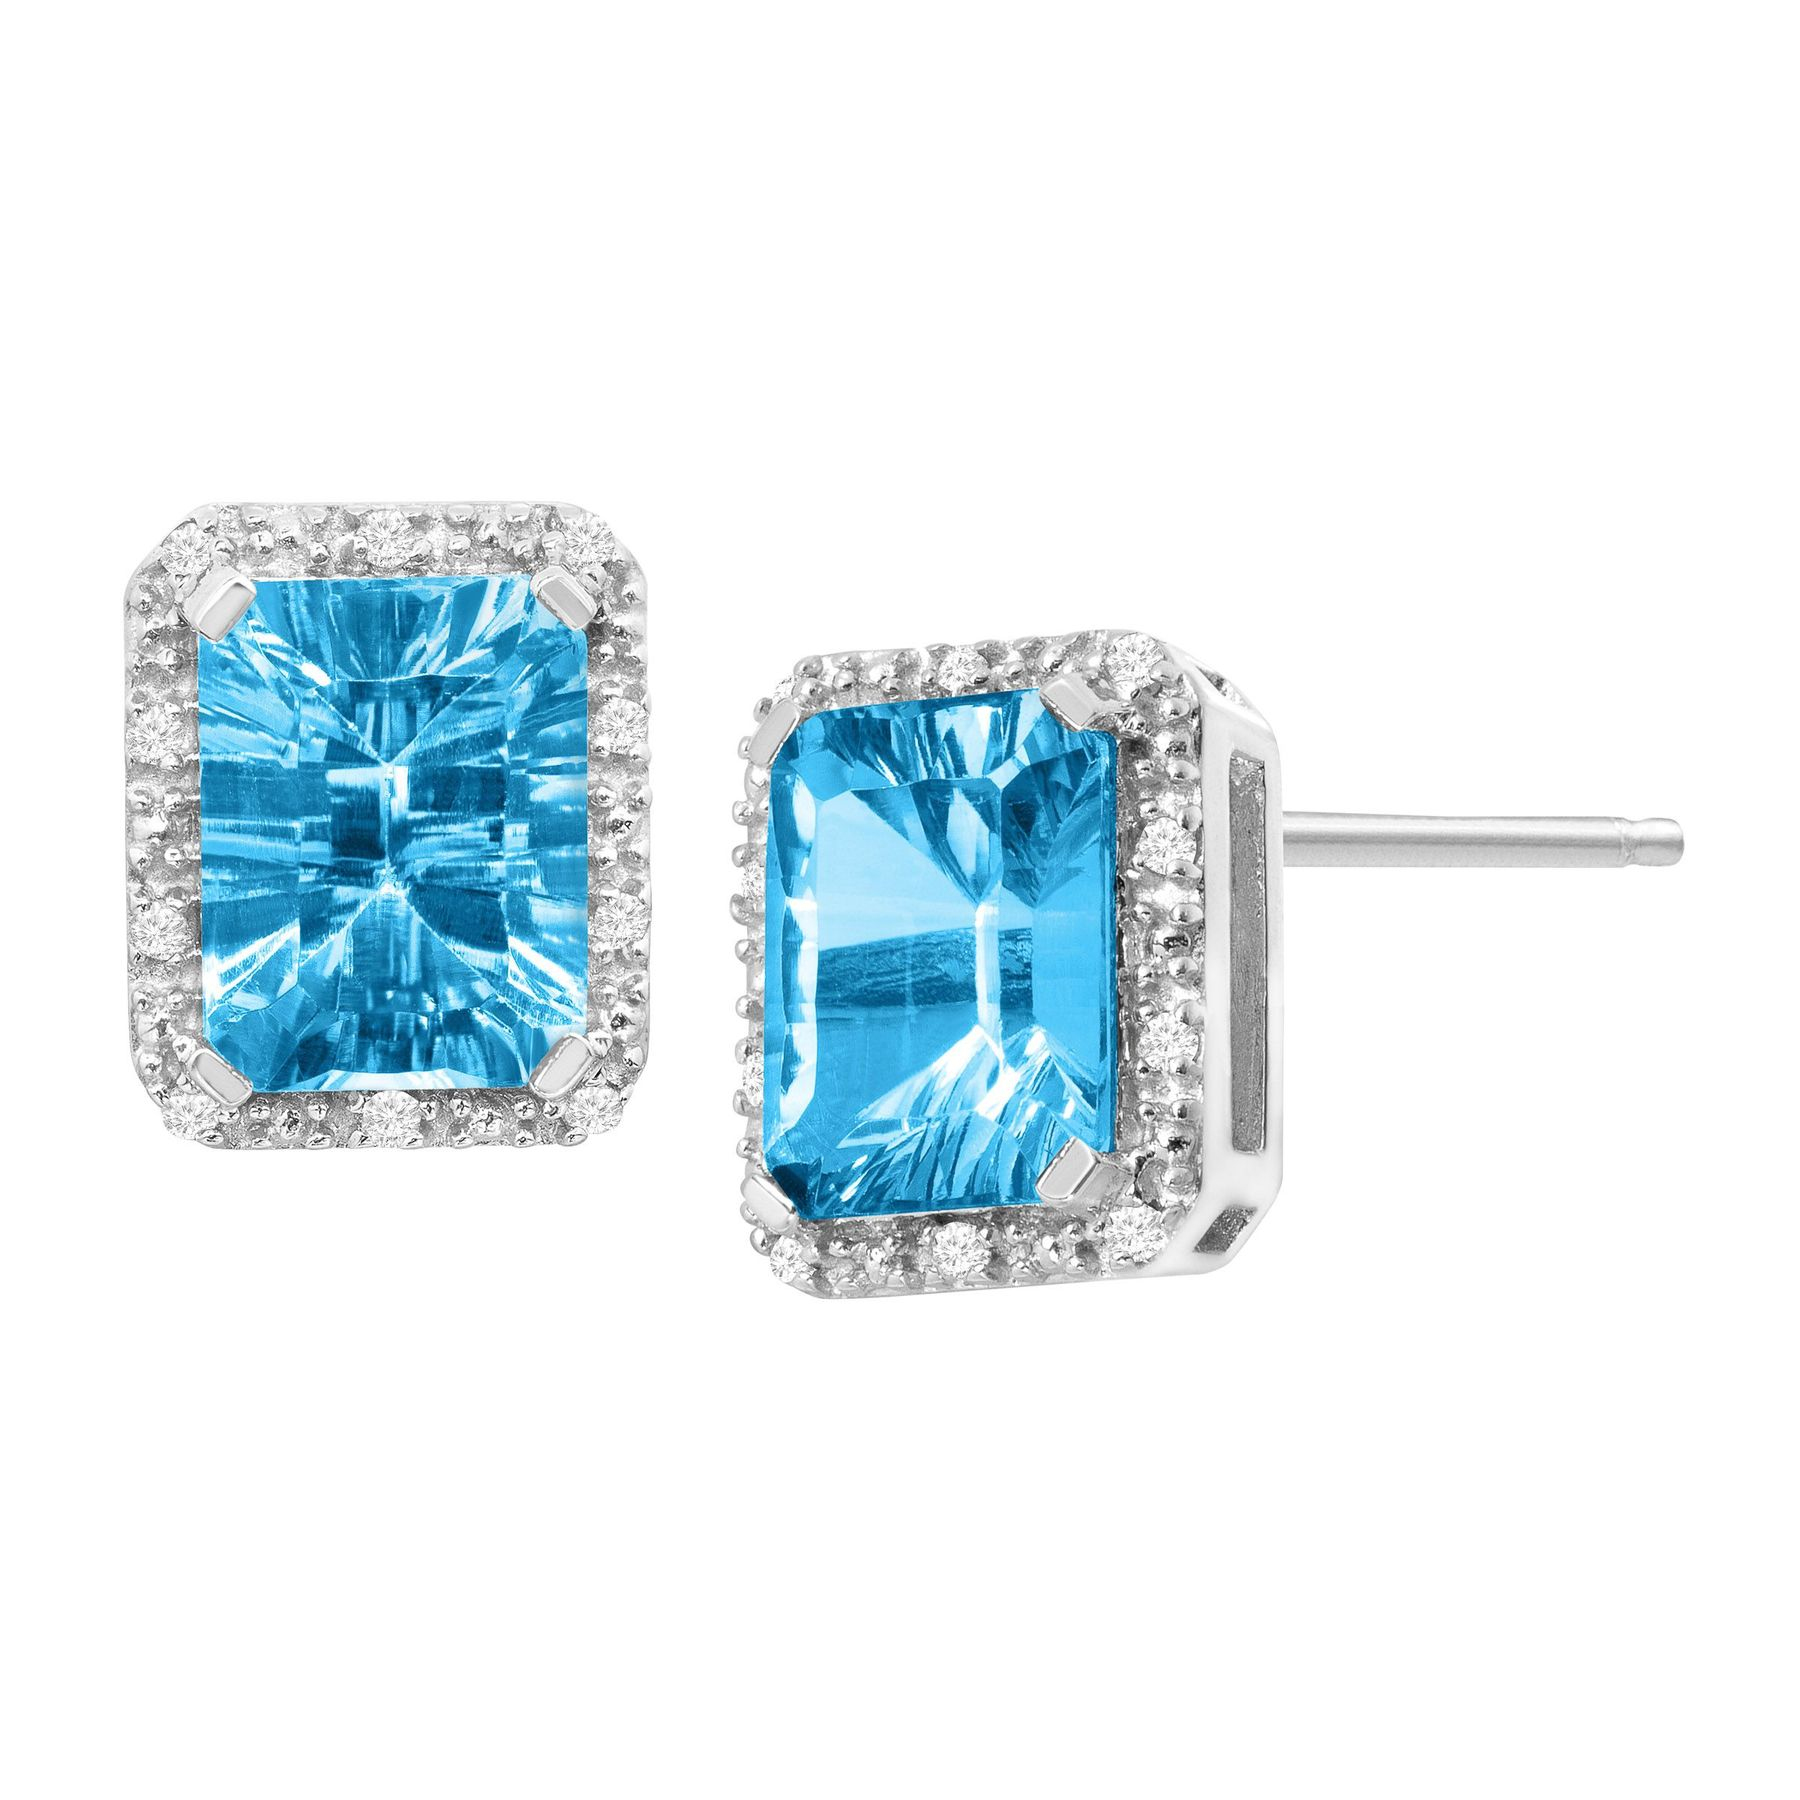 topaz jm bt collections jade blue collection sterling marie sophisticated gm silver popular products gemstone earrings stud